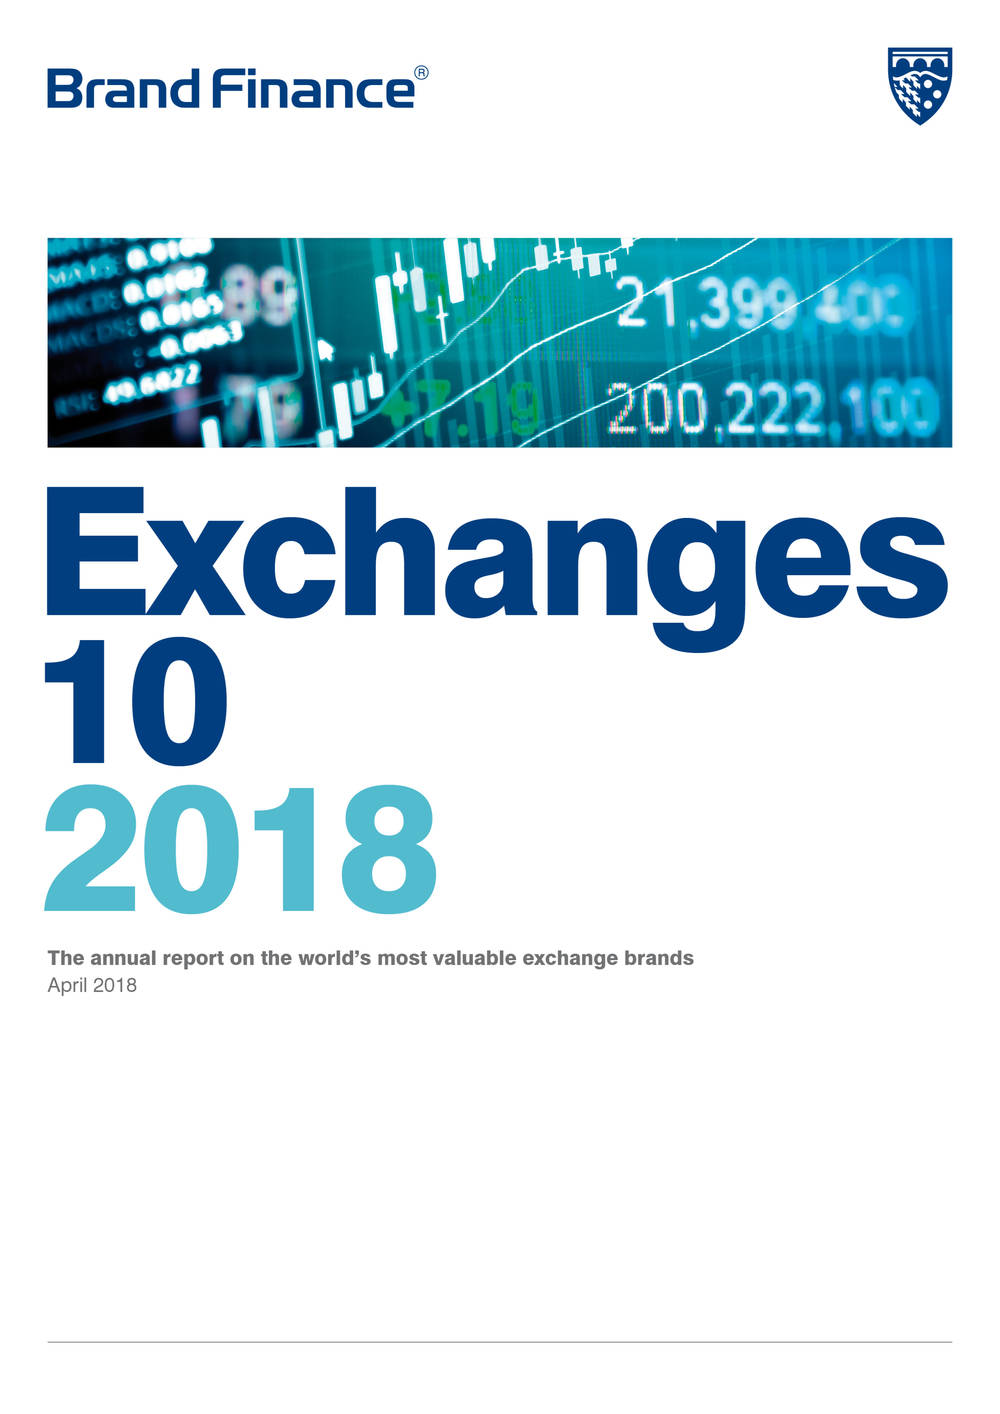 Brand Finance Exchanges 10 2018